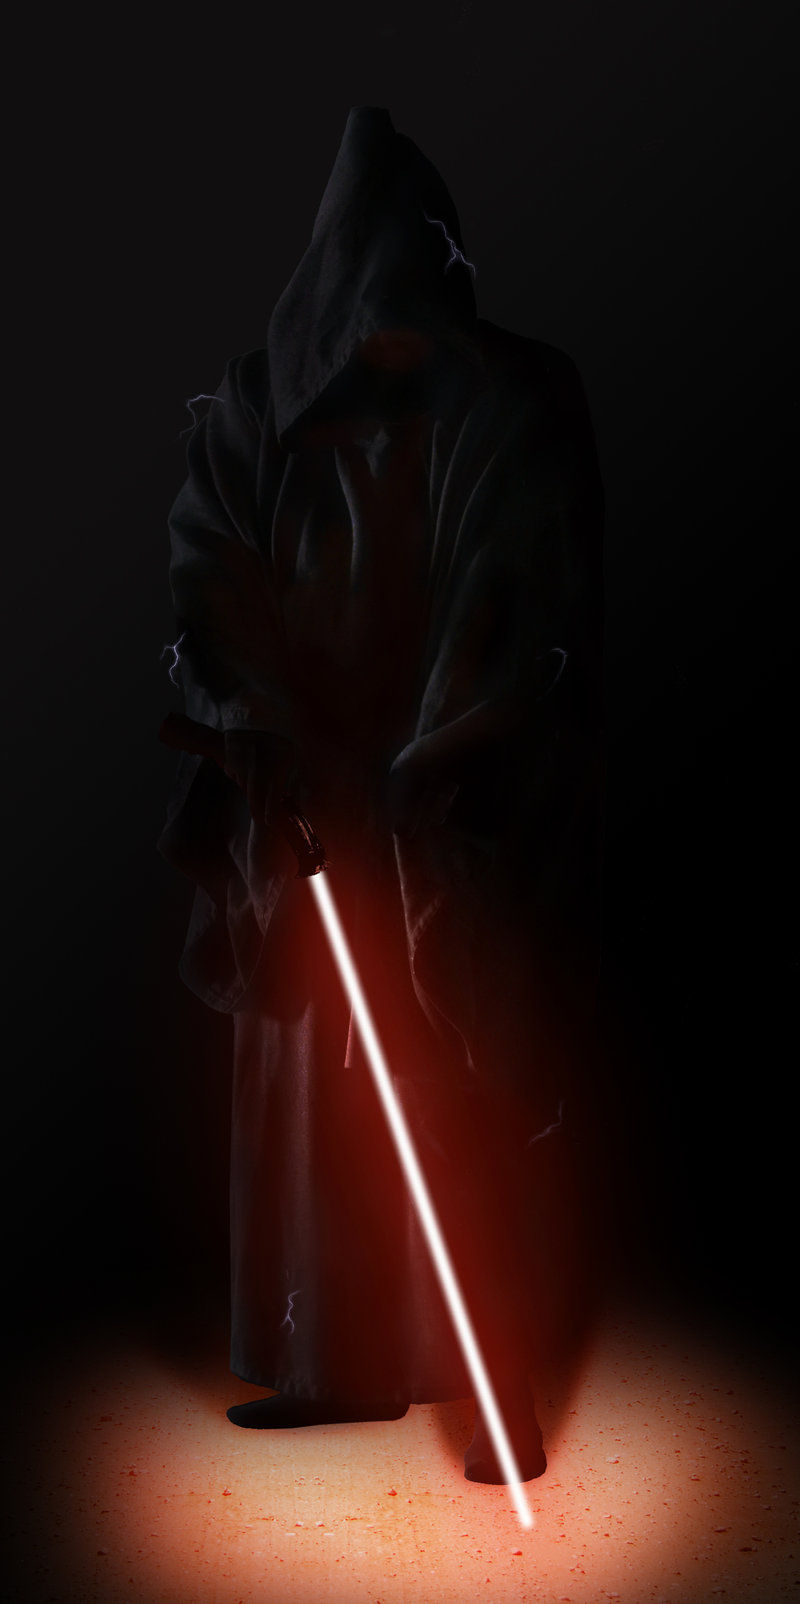 Dark-Lord-Of-The-Sith-Dark-Lords-of-Sith-List-wallpaper-wp5804926